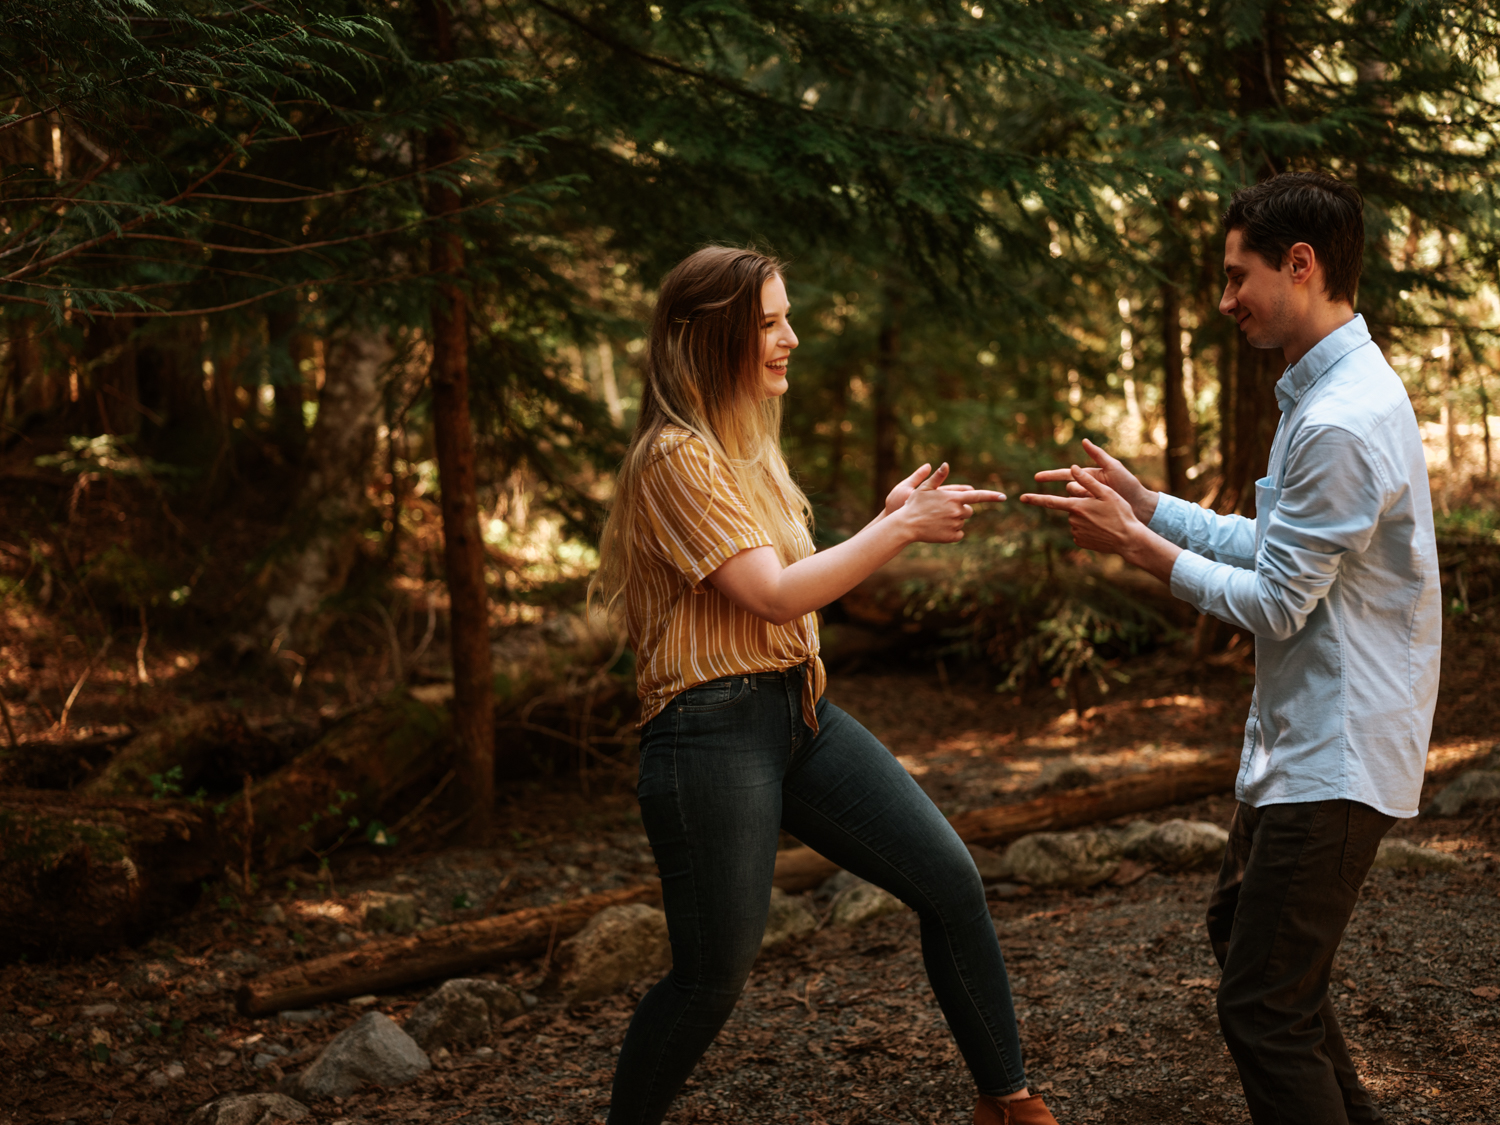 Franklin Falls Washington Engagement Session Stolen Glimpses Seattle Wedding Photographer 44.jpg